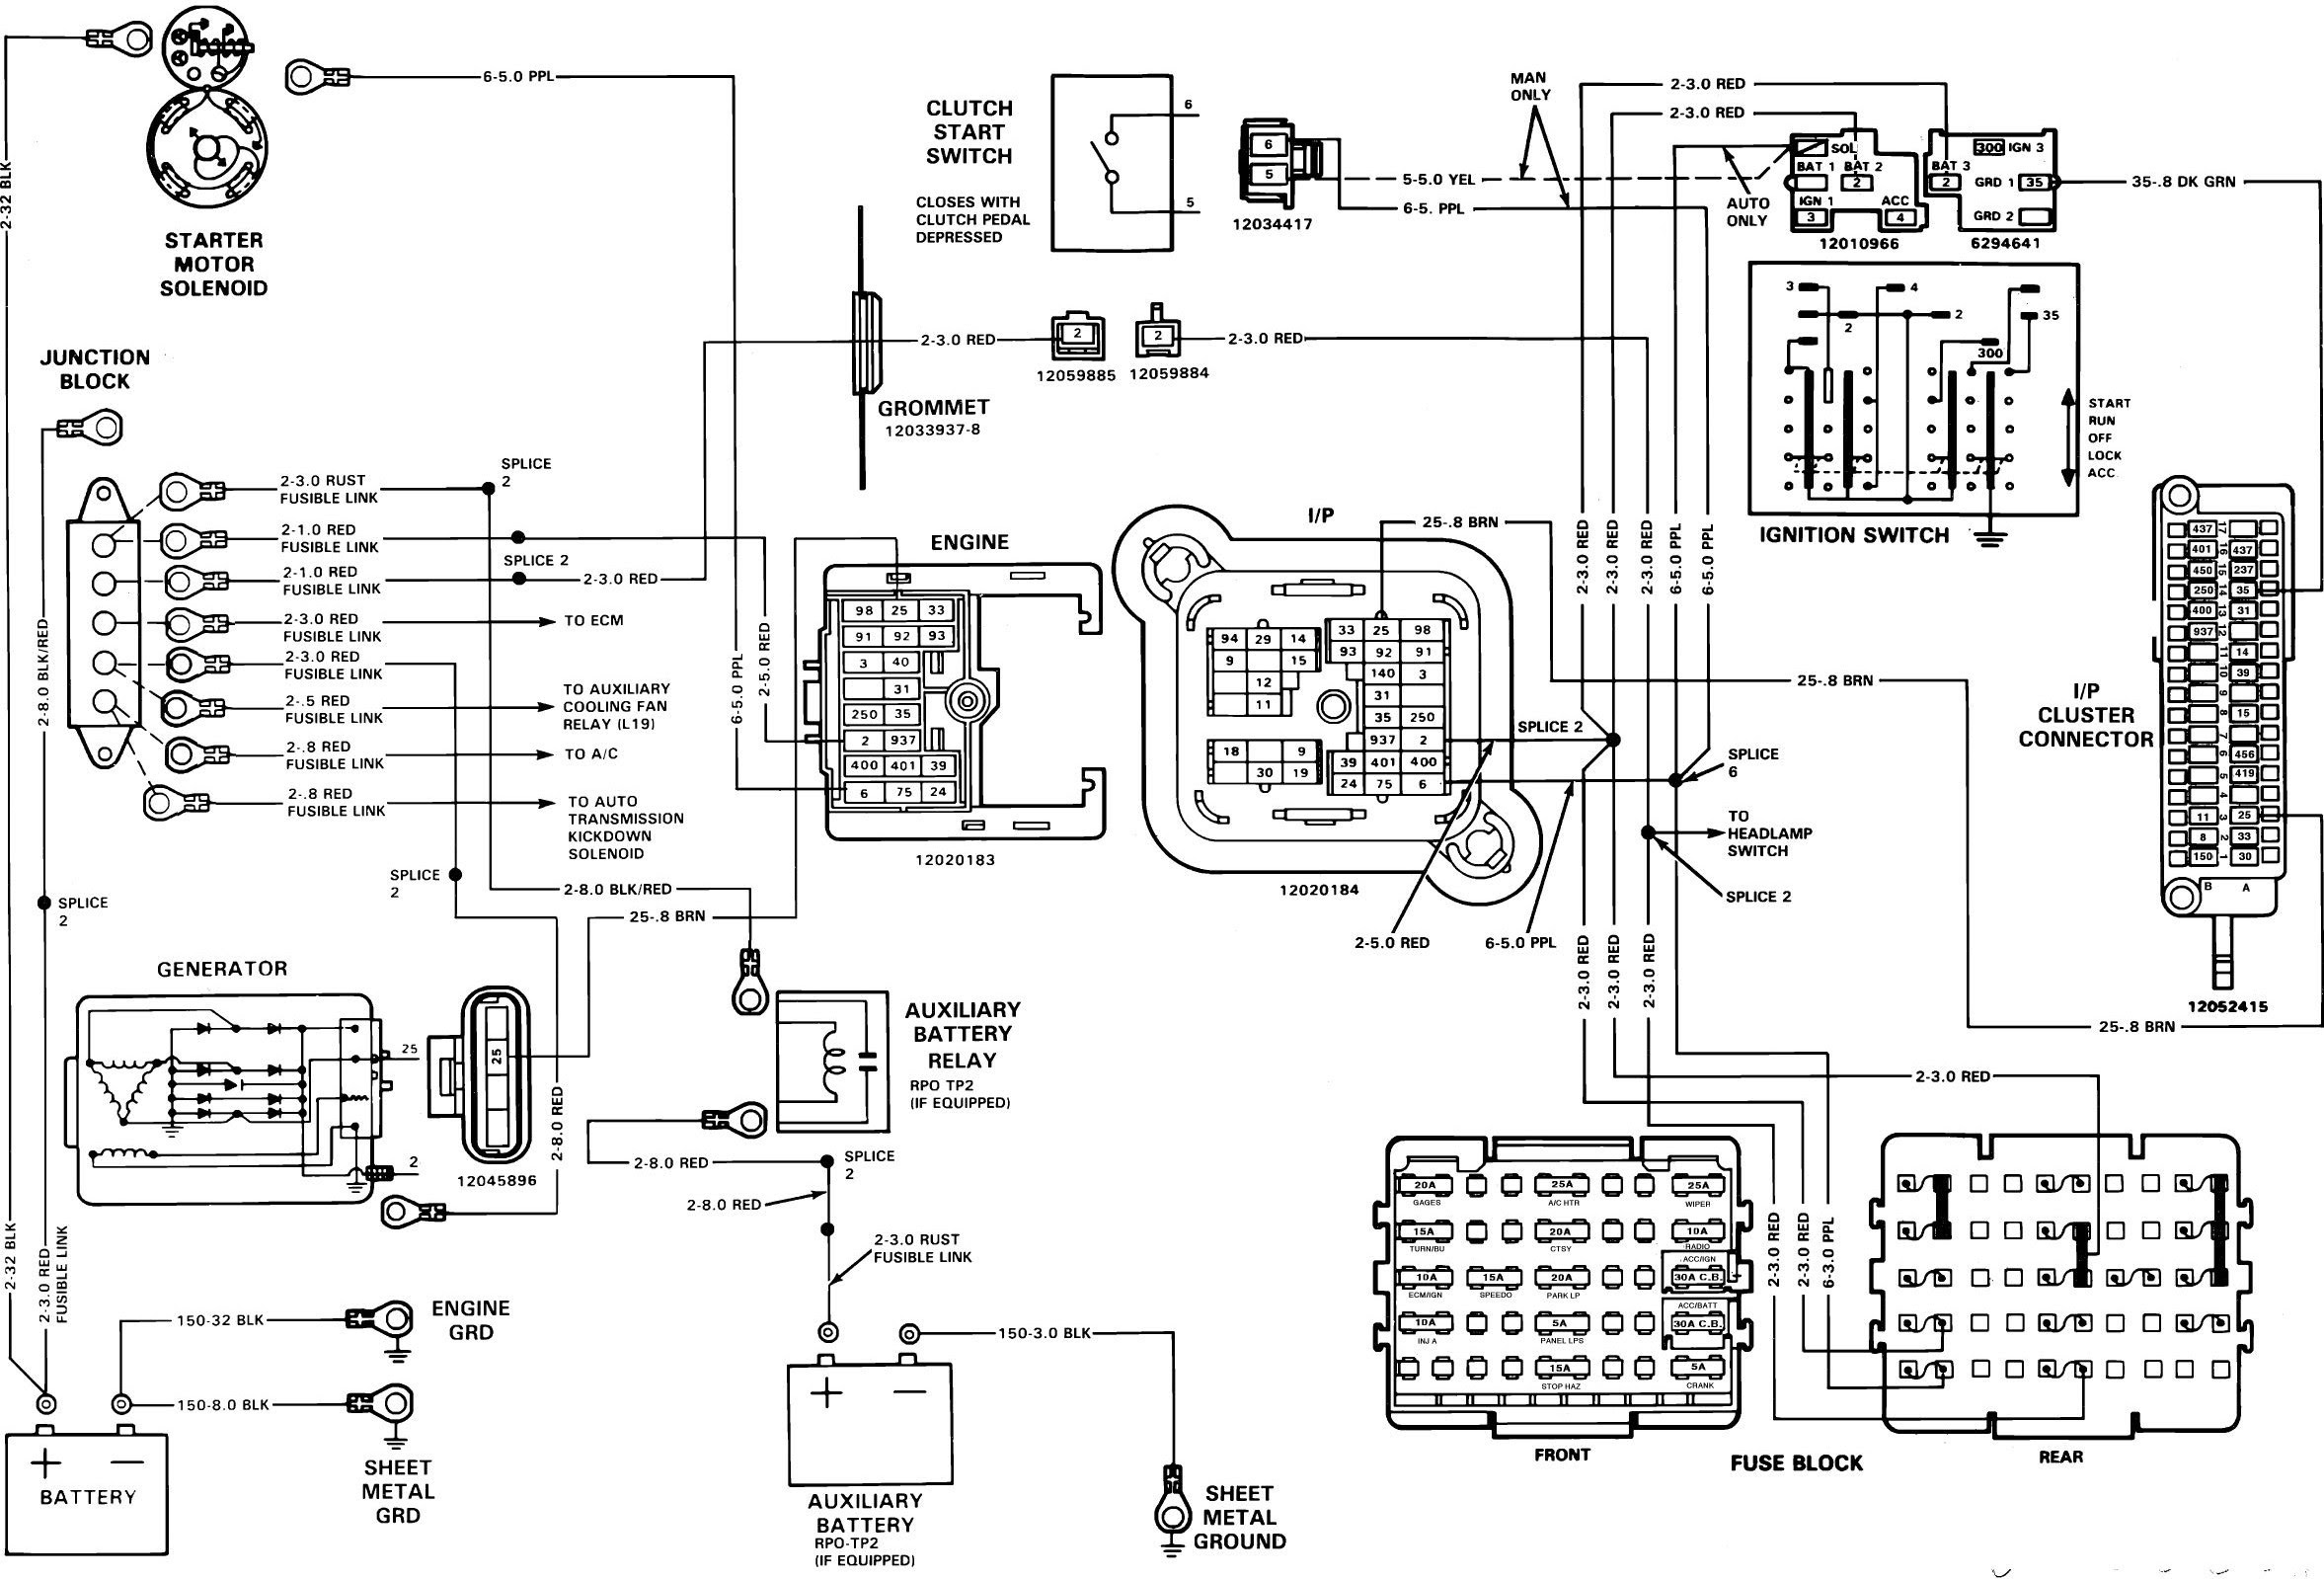 1989 Chevy Wiring Diagram Wiring Diagram Octavia A Octavia A Musikami It